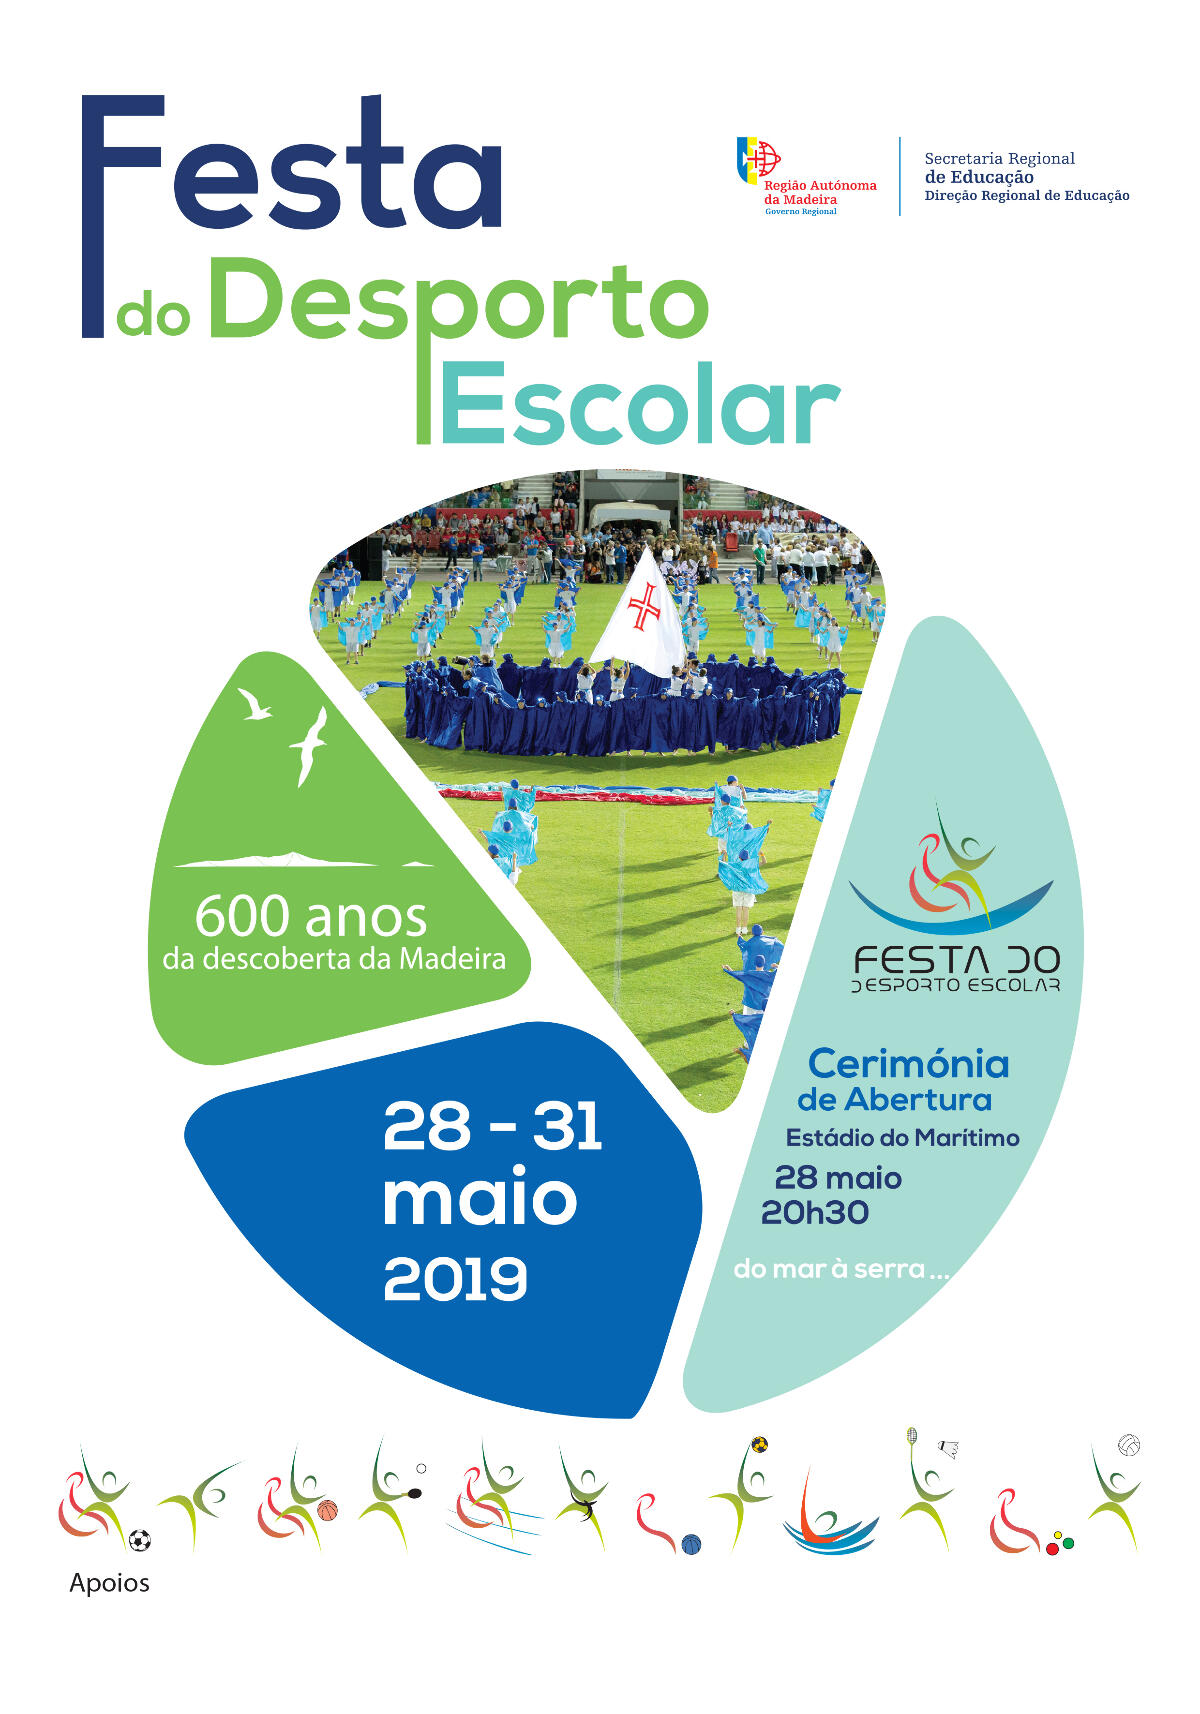 Cerimónia de Abertura do Desporto Escolar 2019